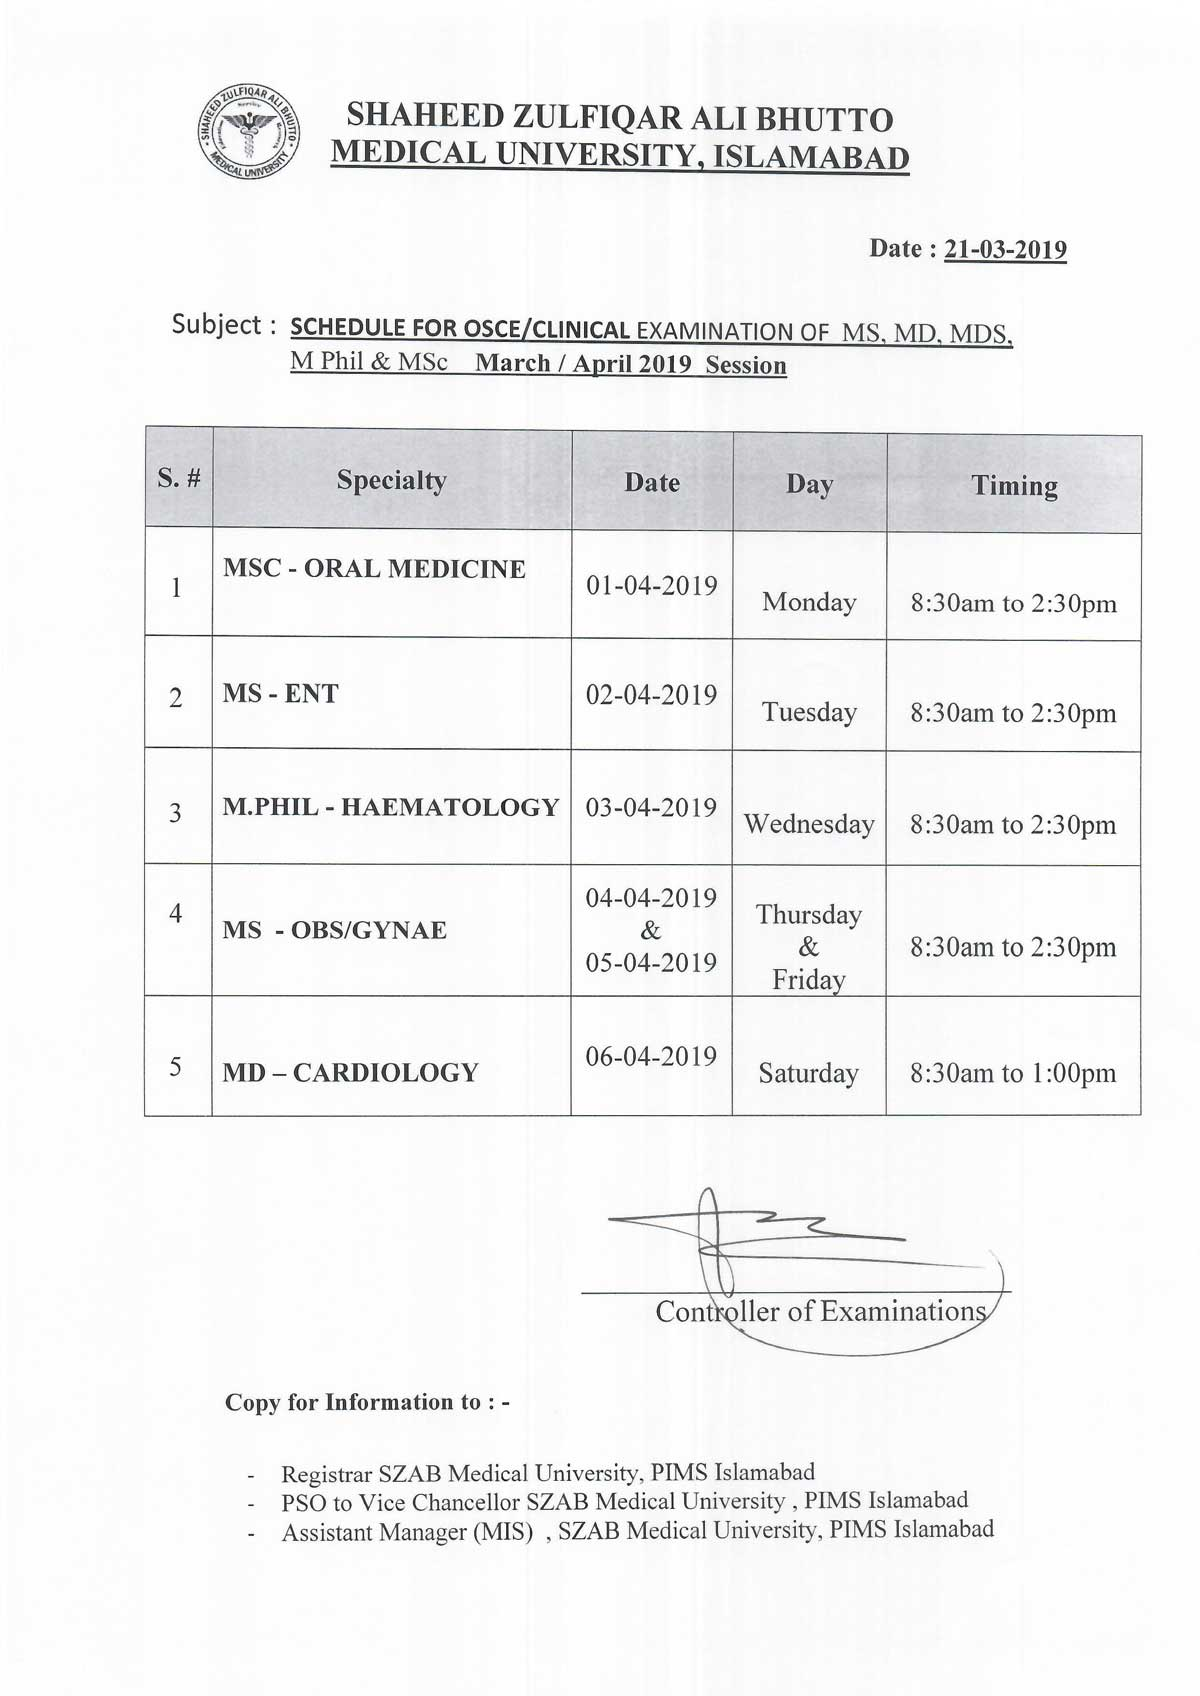 Schedule for OSCE/Clinical Examination of MS, MD, MDS, M.PHIL & M.SC March/ April 2019 Session